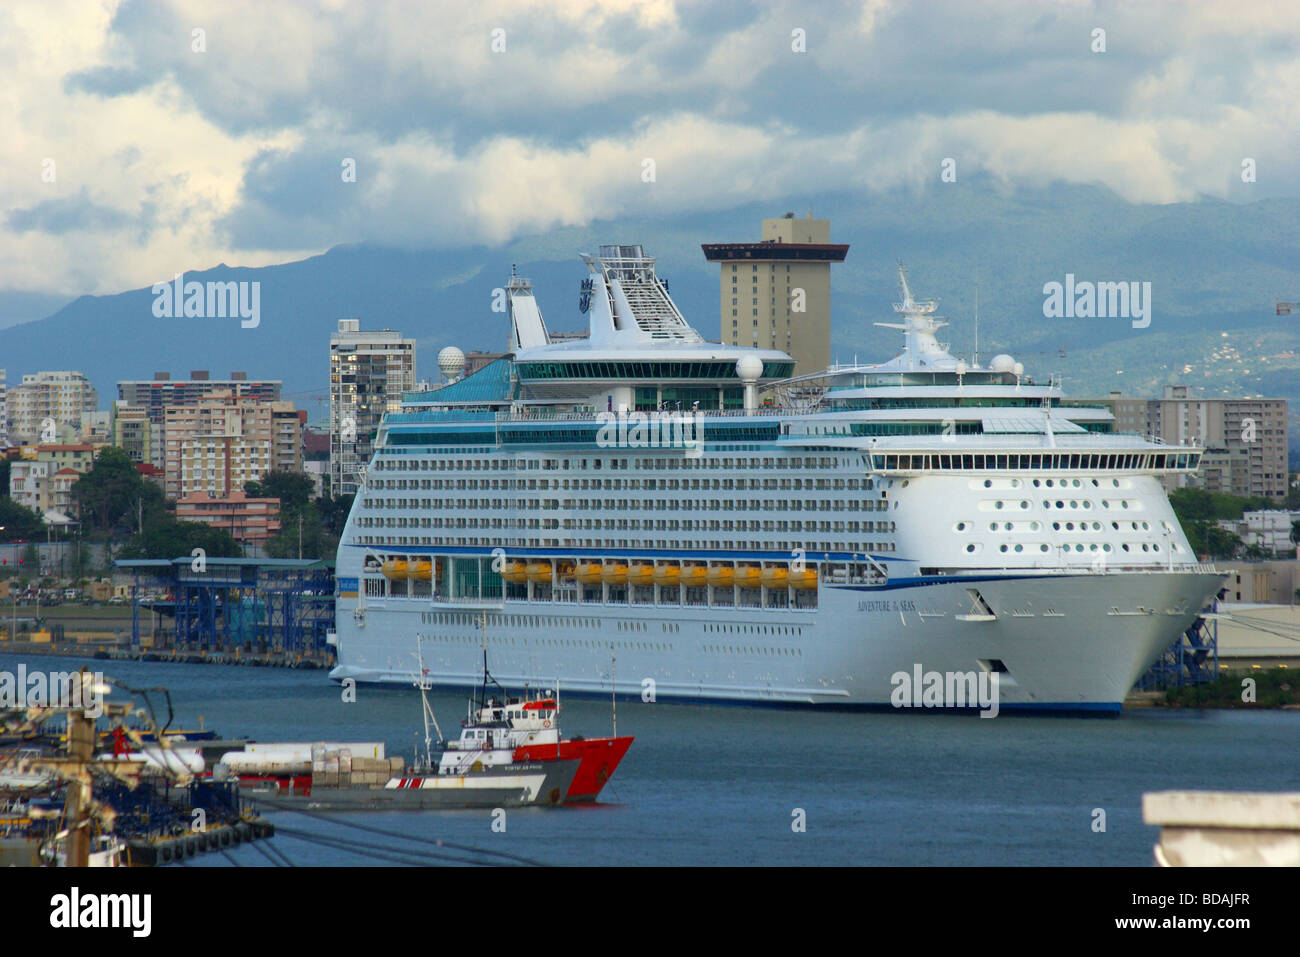 Get Are Cruise Ships Going To Puerto Rico Now  Background